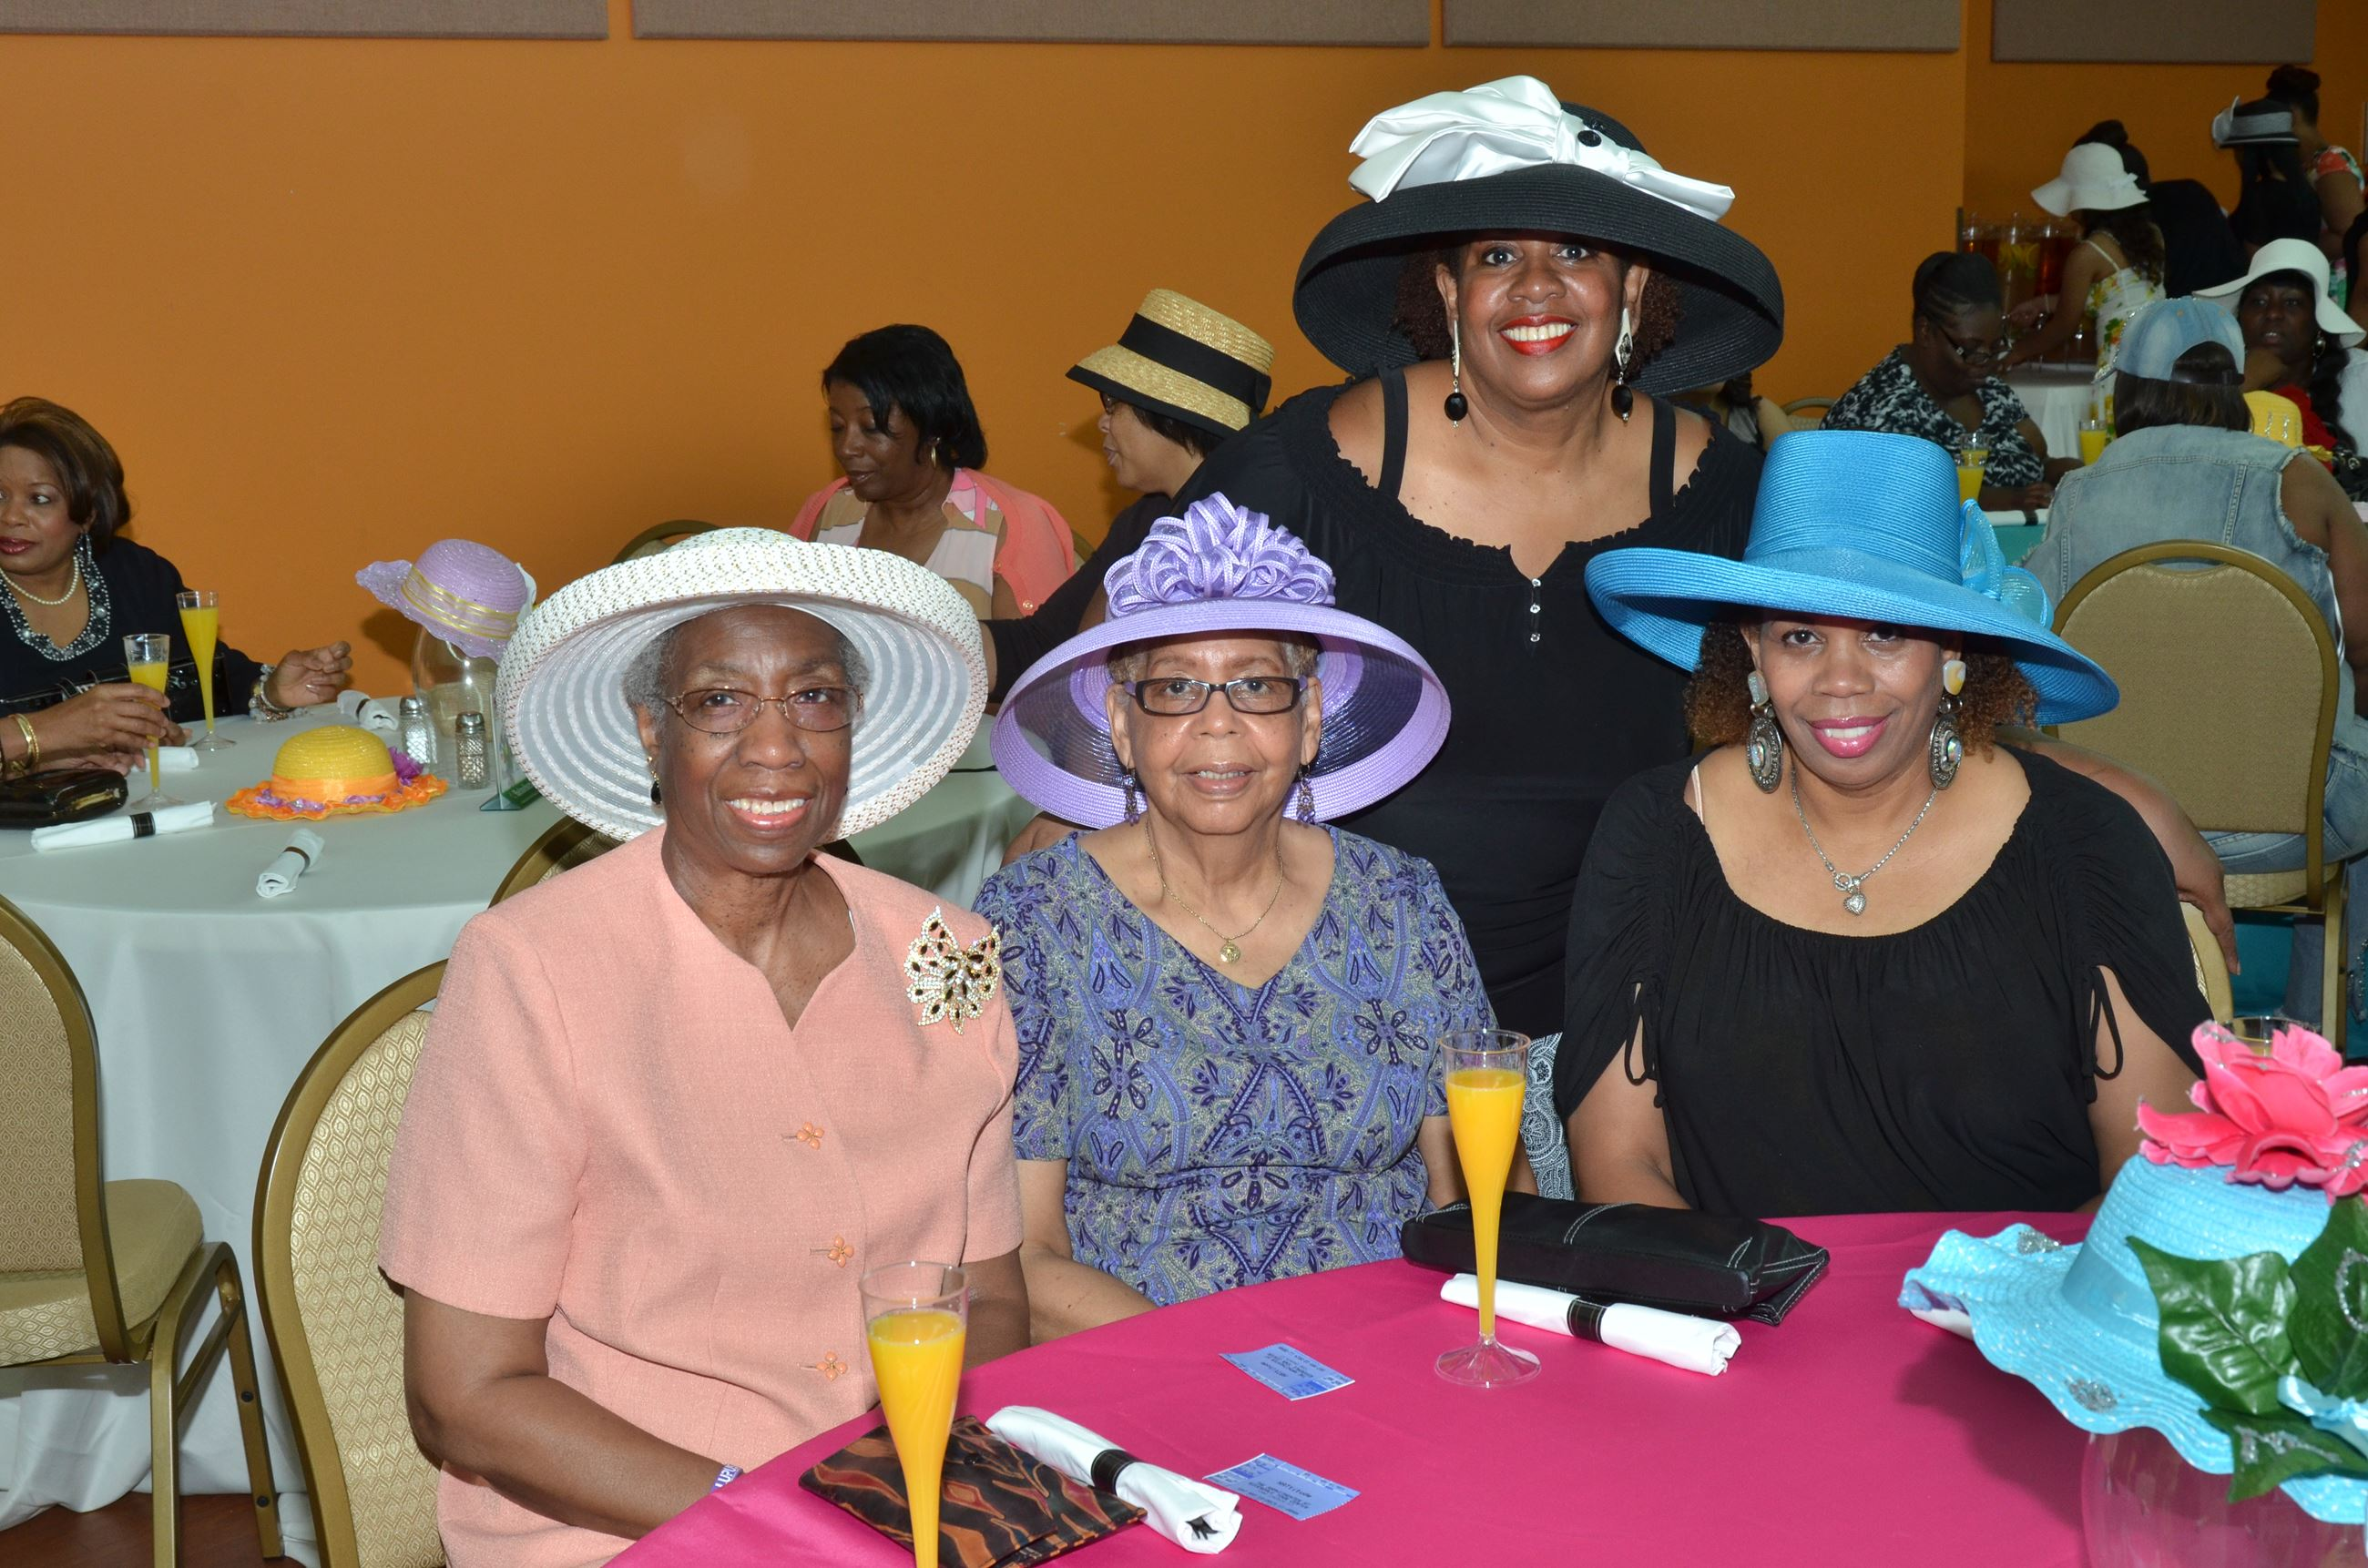 Women in White, Purple, Blue and Black Hats